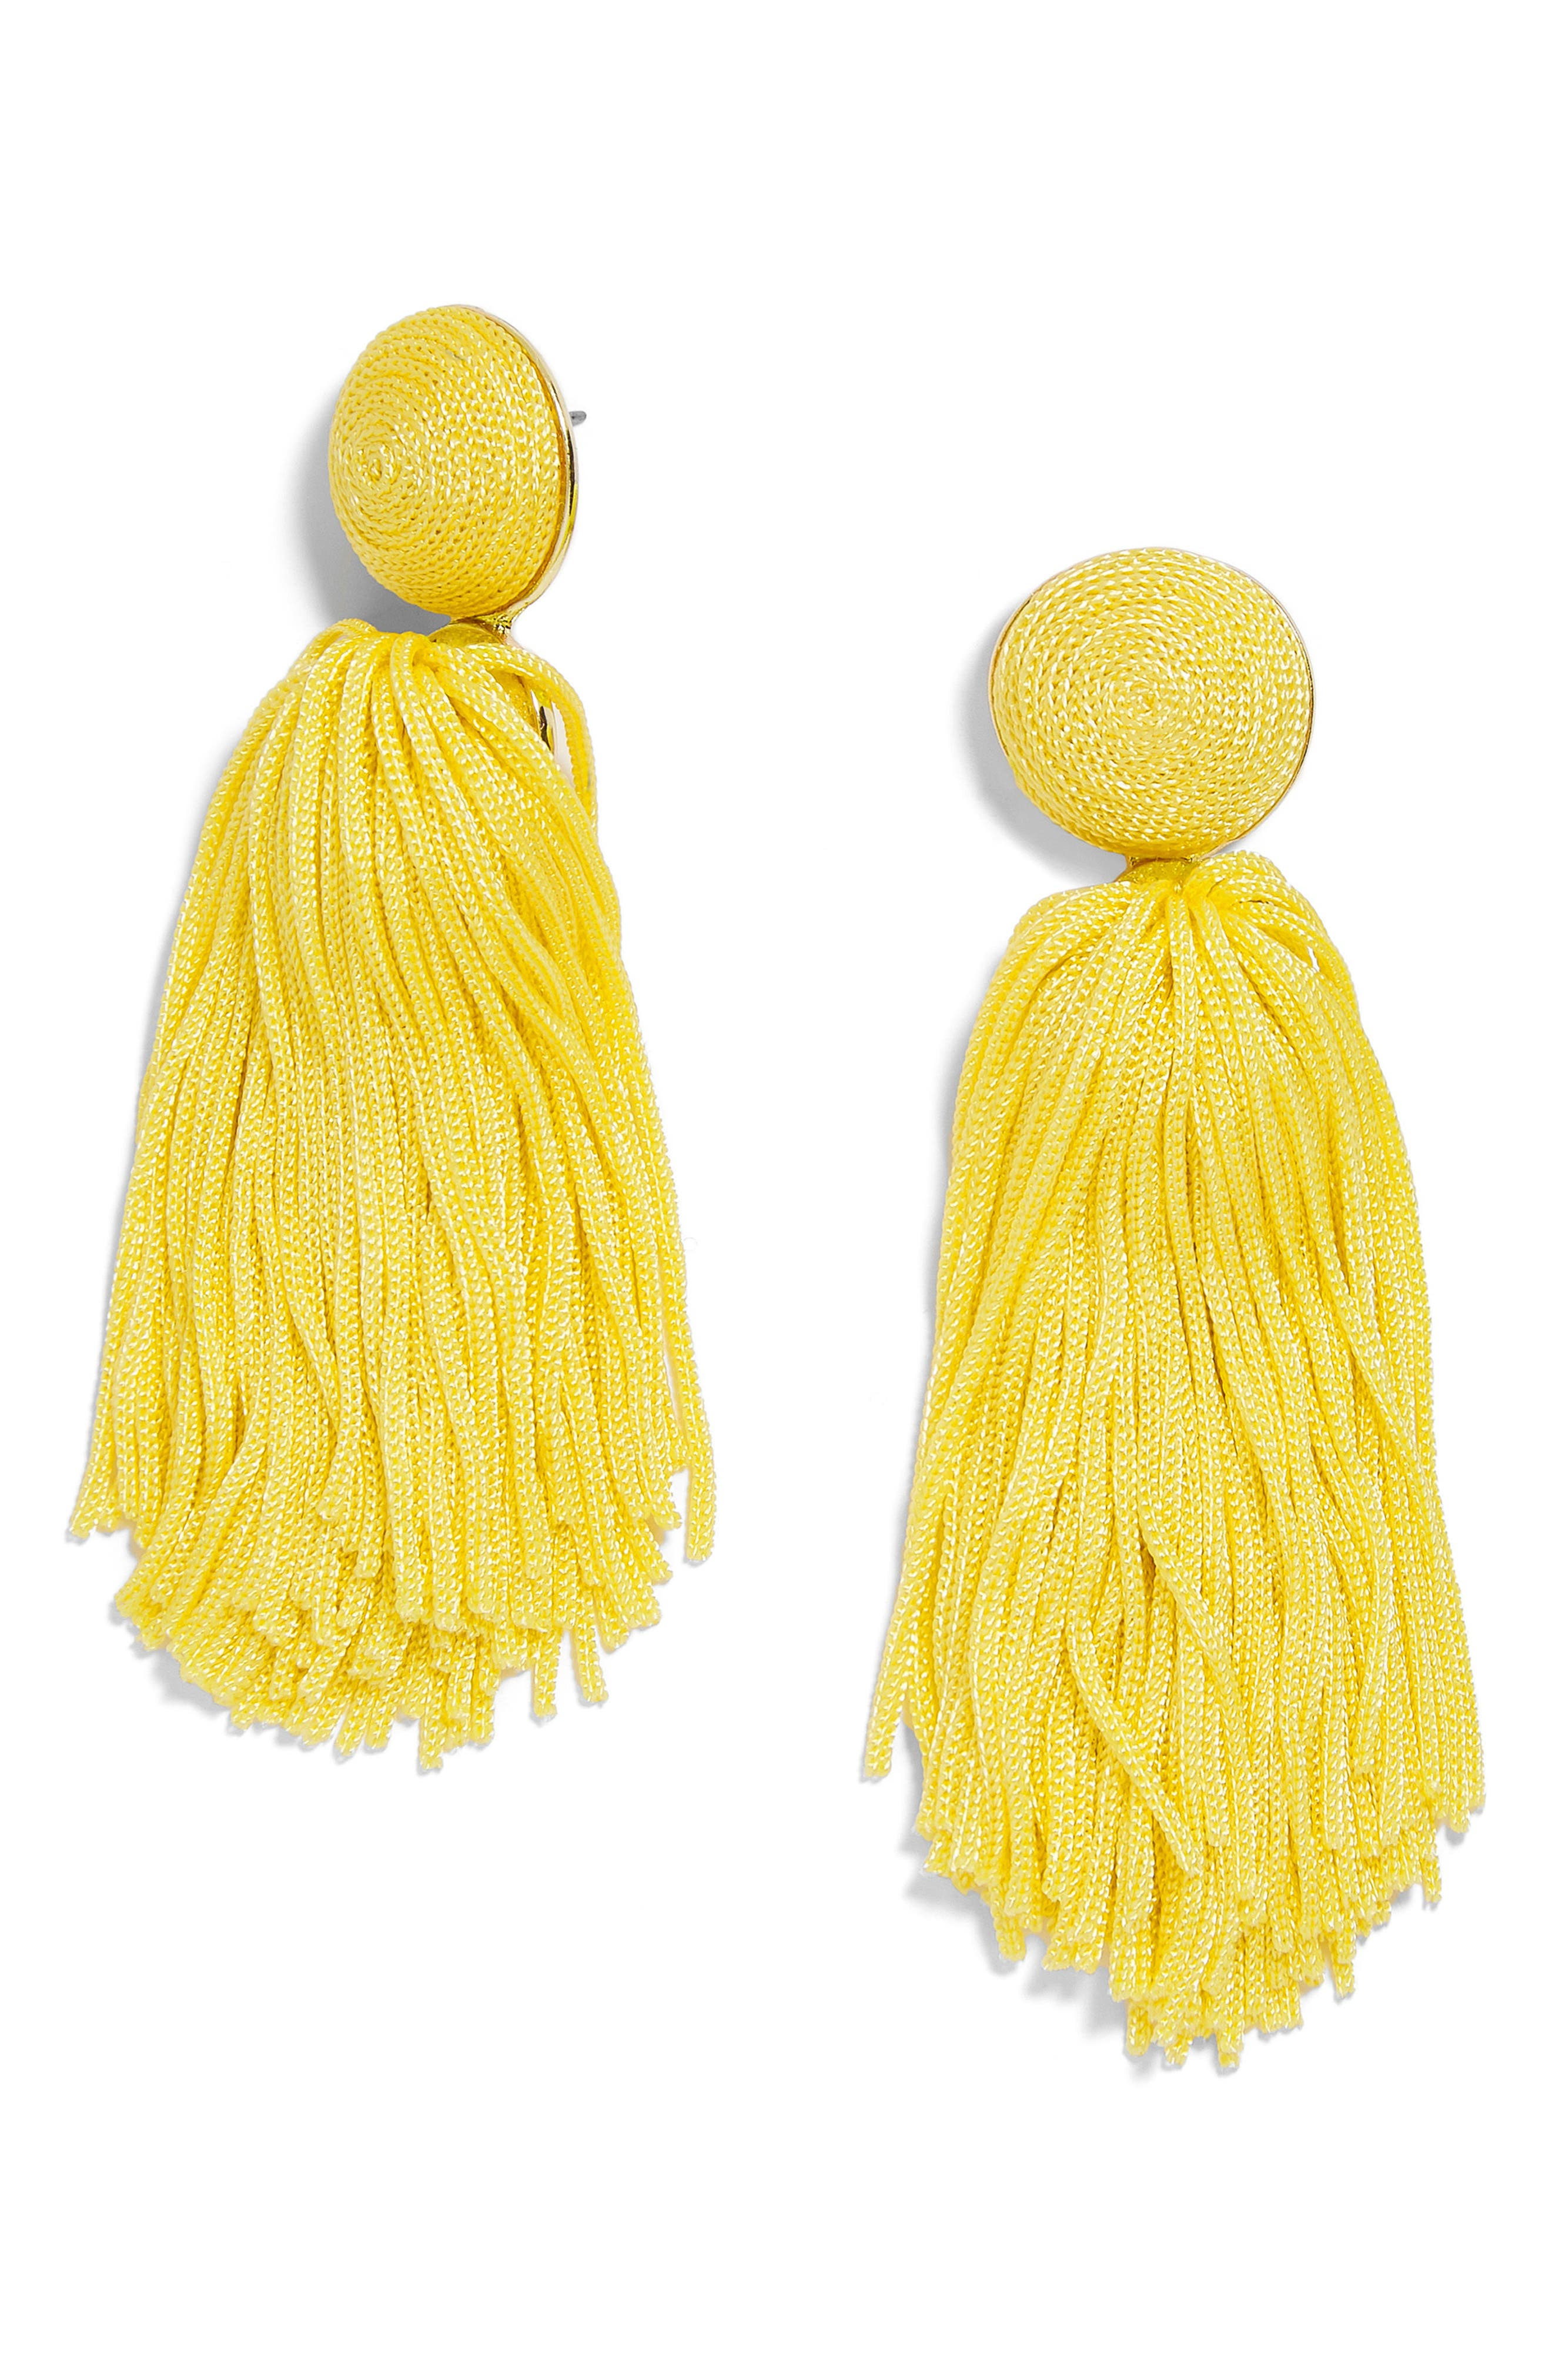 Sonatina Tassel Earrings,                             Main thumbnail 8, color,